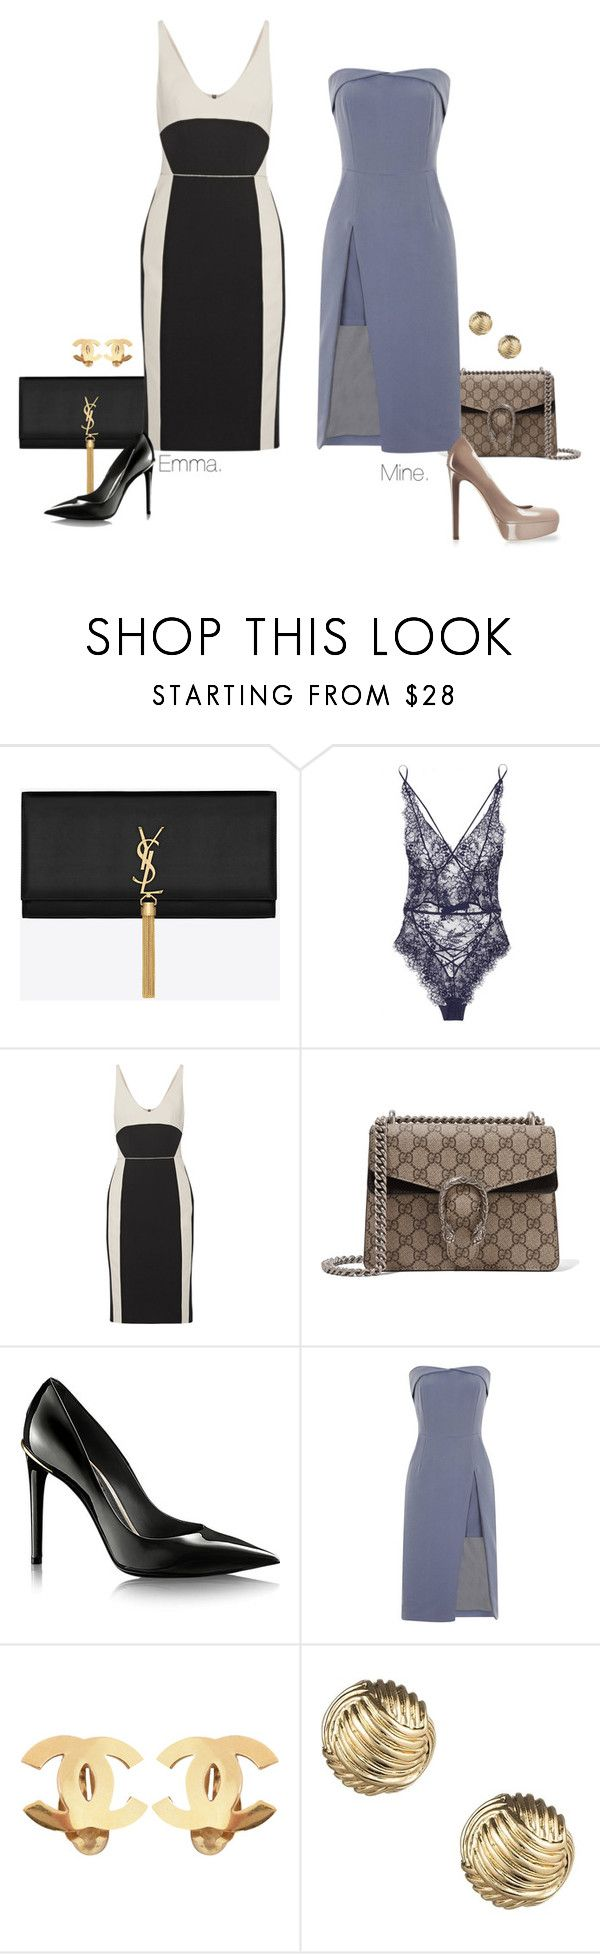 """""""'Tom & Derek' Madrid Photocall."""" by foreverforbiddenromancefashion ❤ liked on Polyvore featuring Yves Saint Laurent, Agent Provocateur, Narciso Rodriguez, Gucci, Topshop, Chanel and Sperry"""